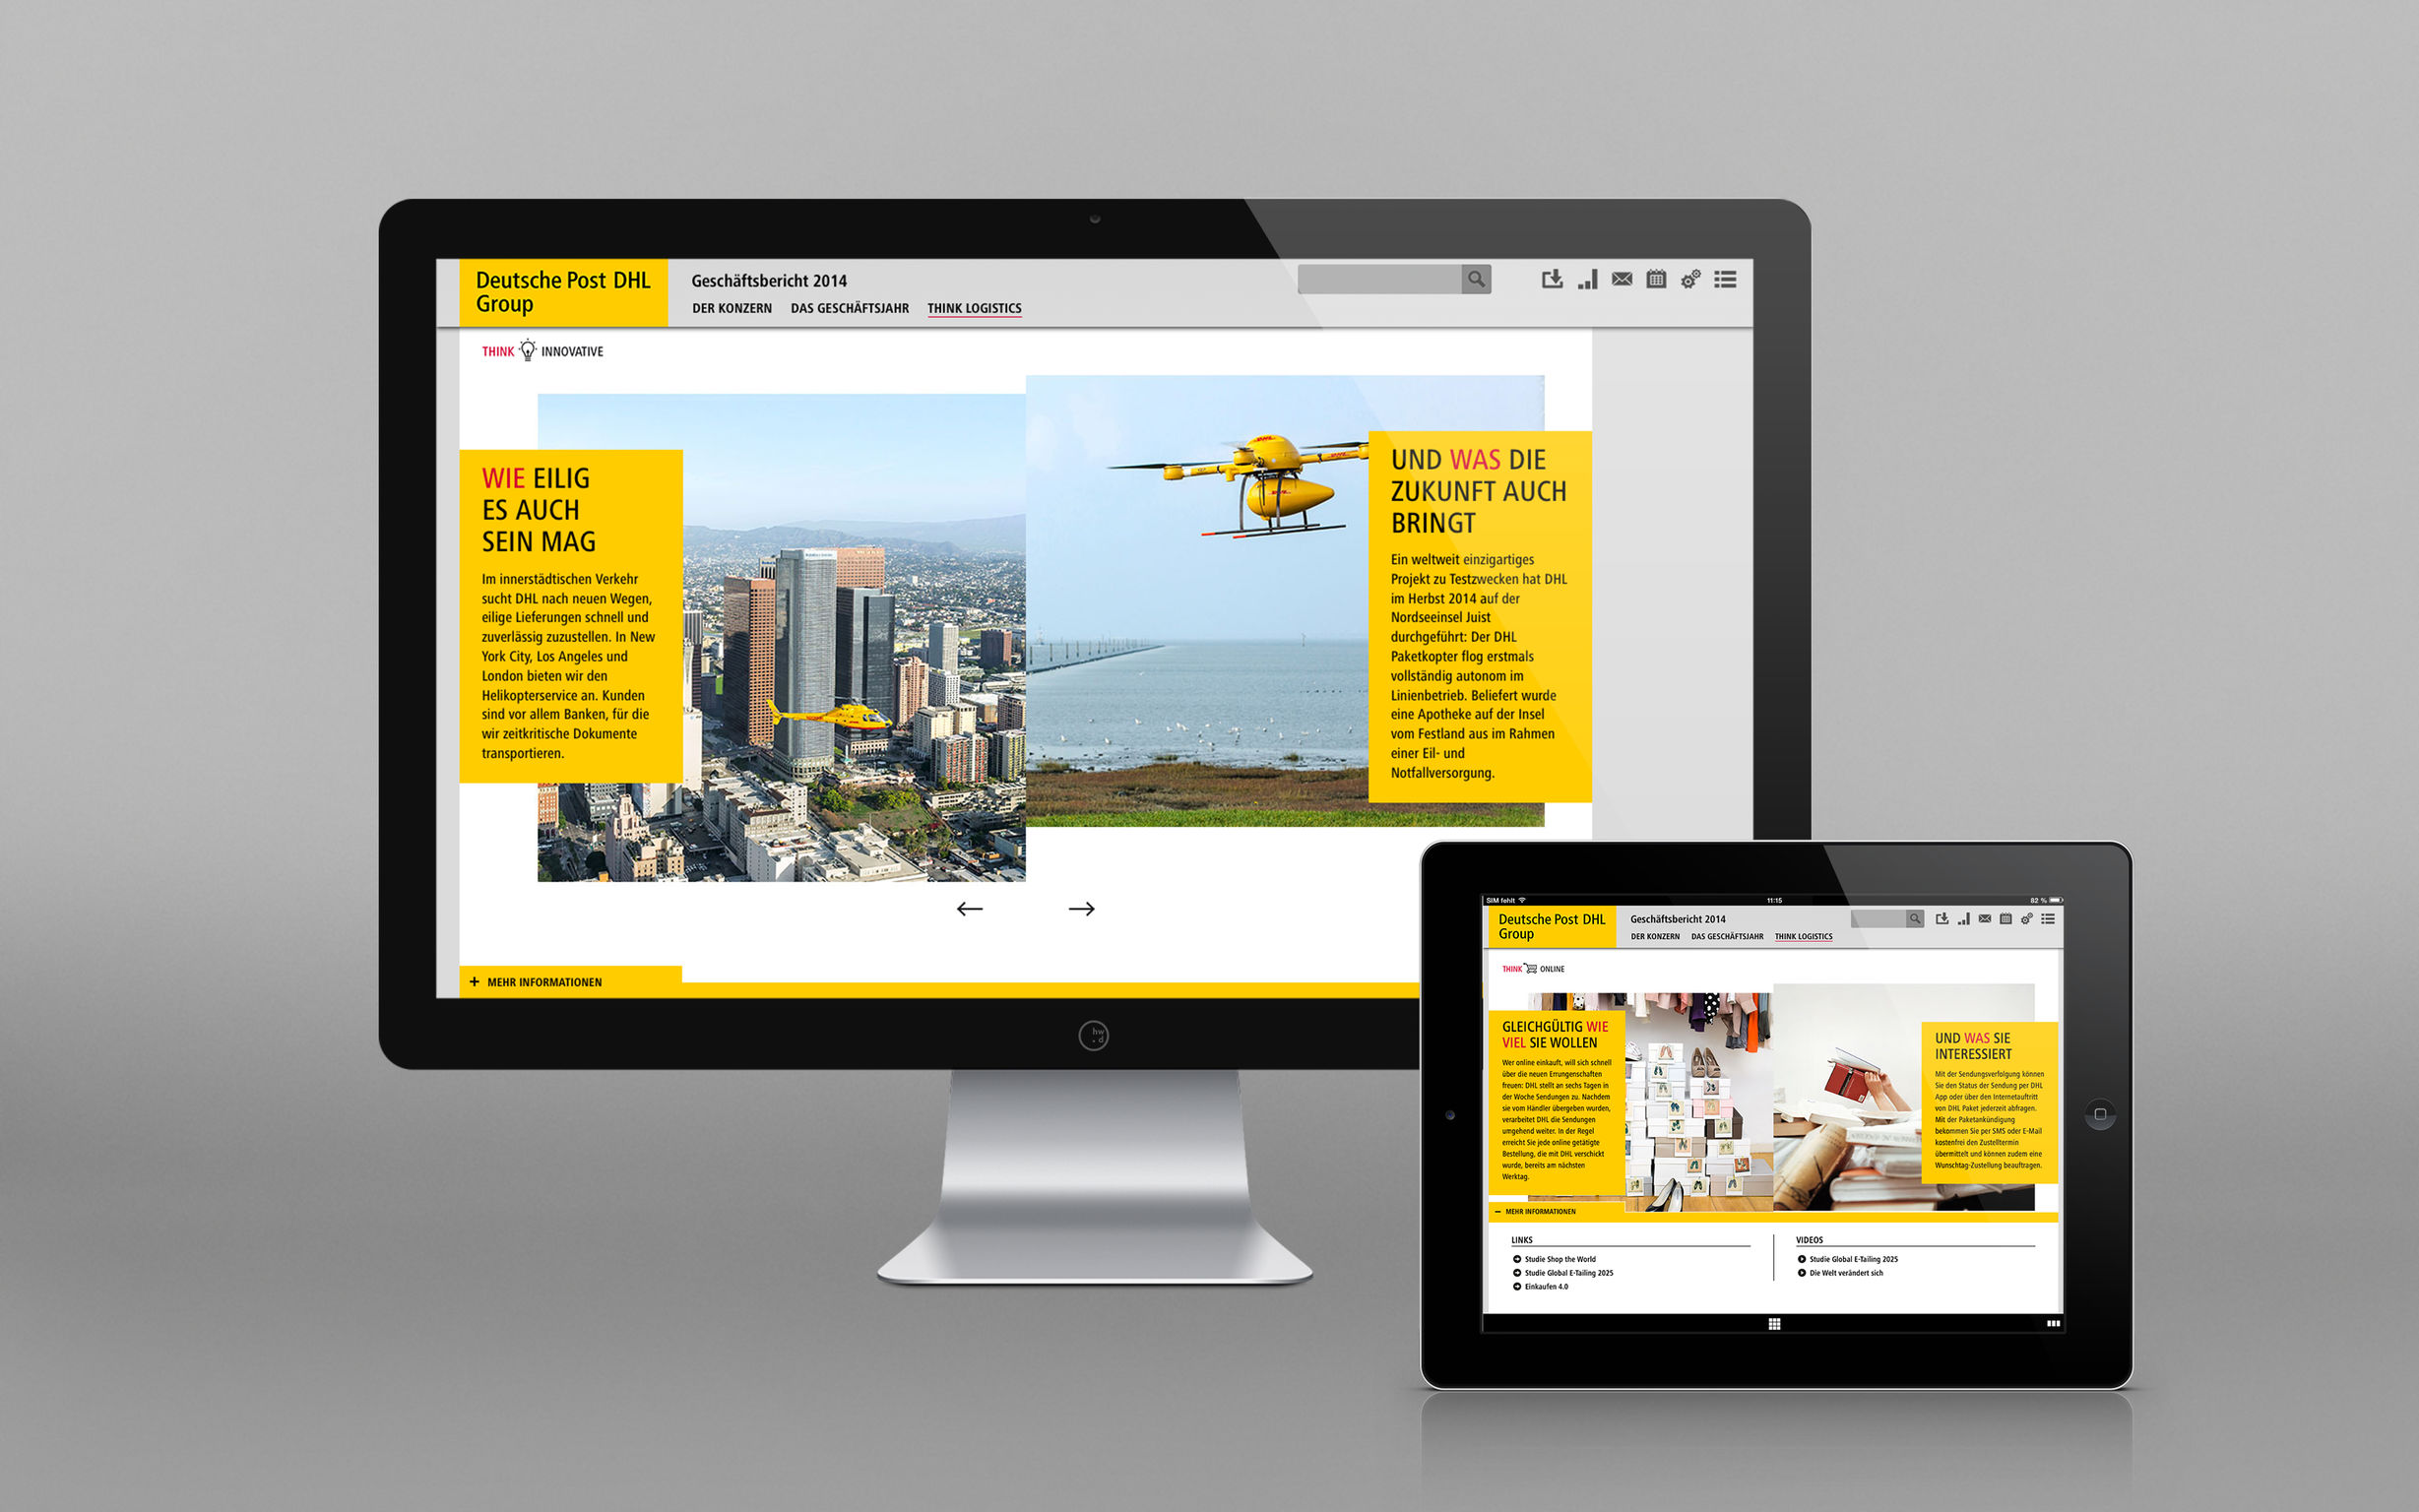 DP DHL Group - Entry - iF WORLD DESIGN GUIDE